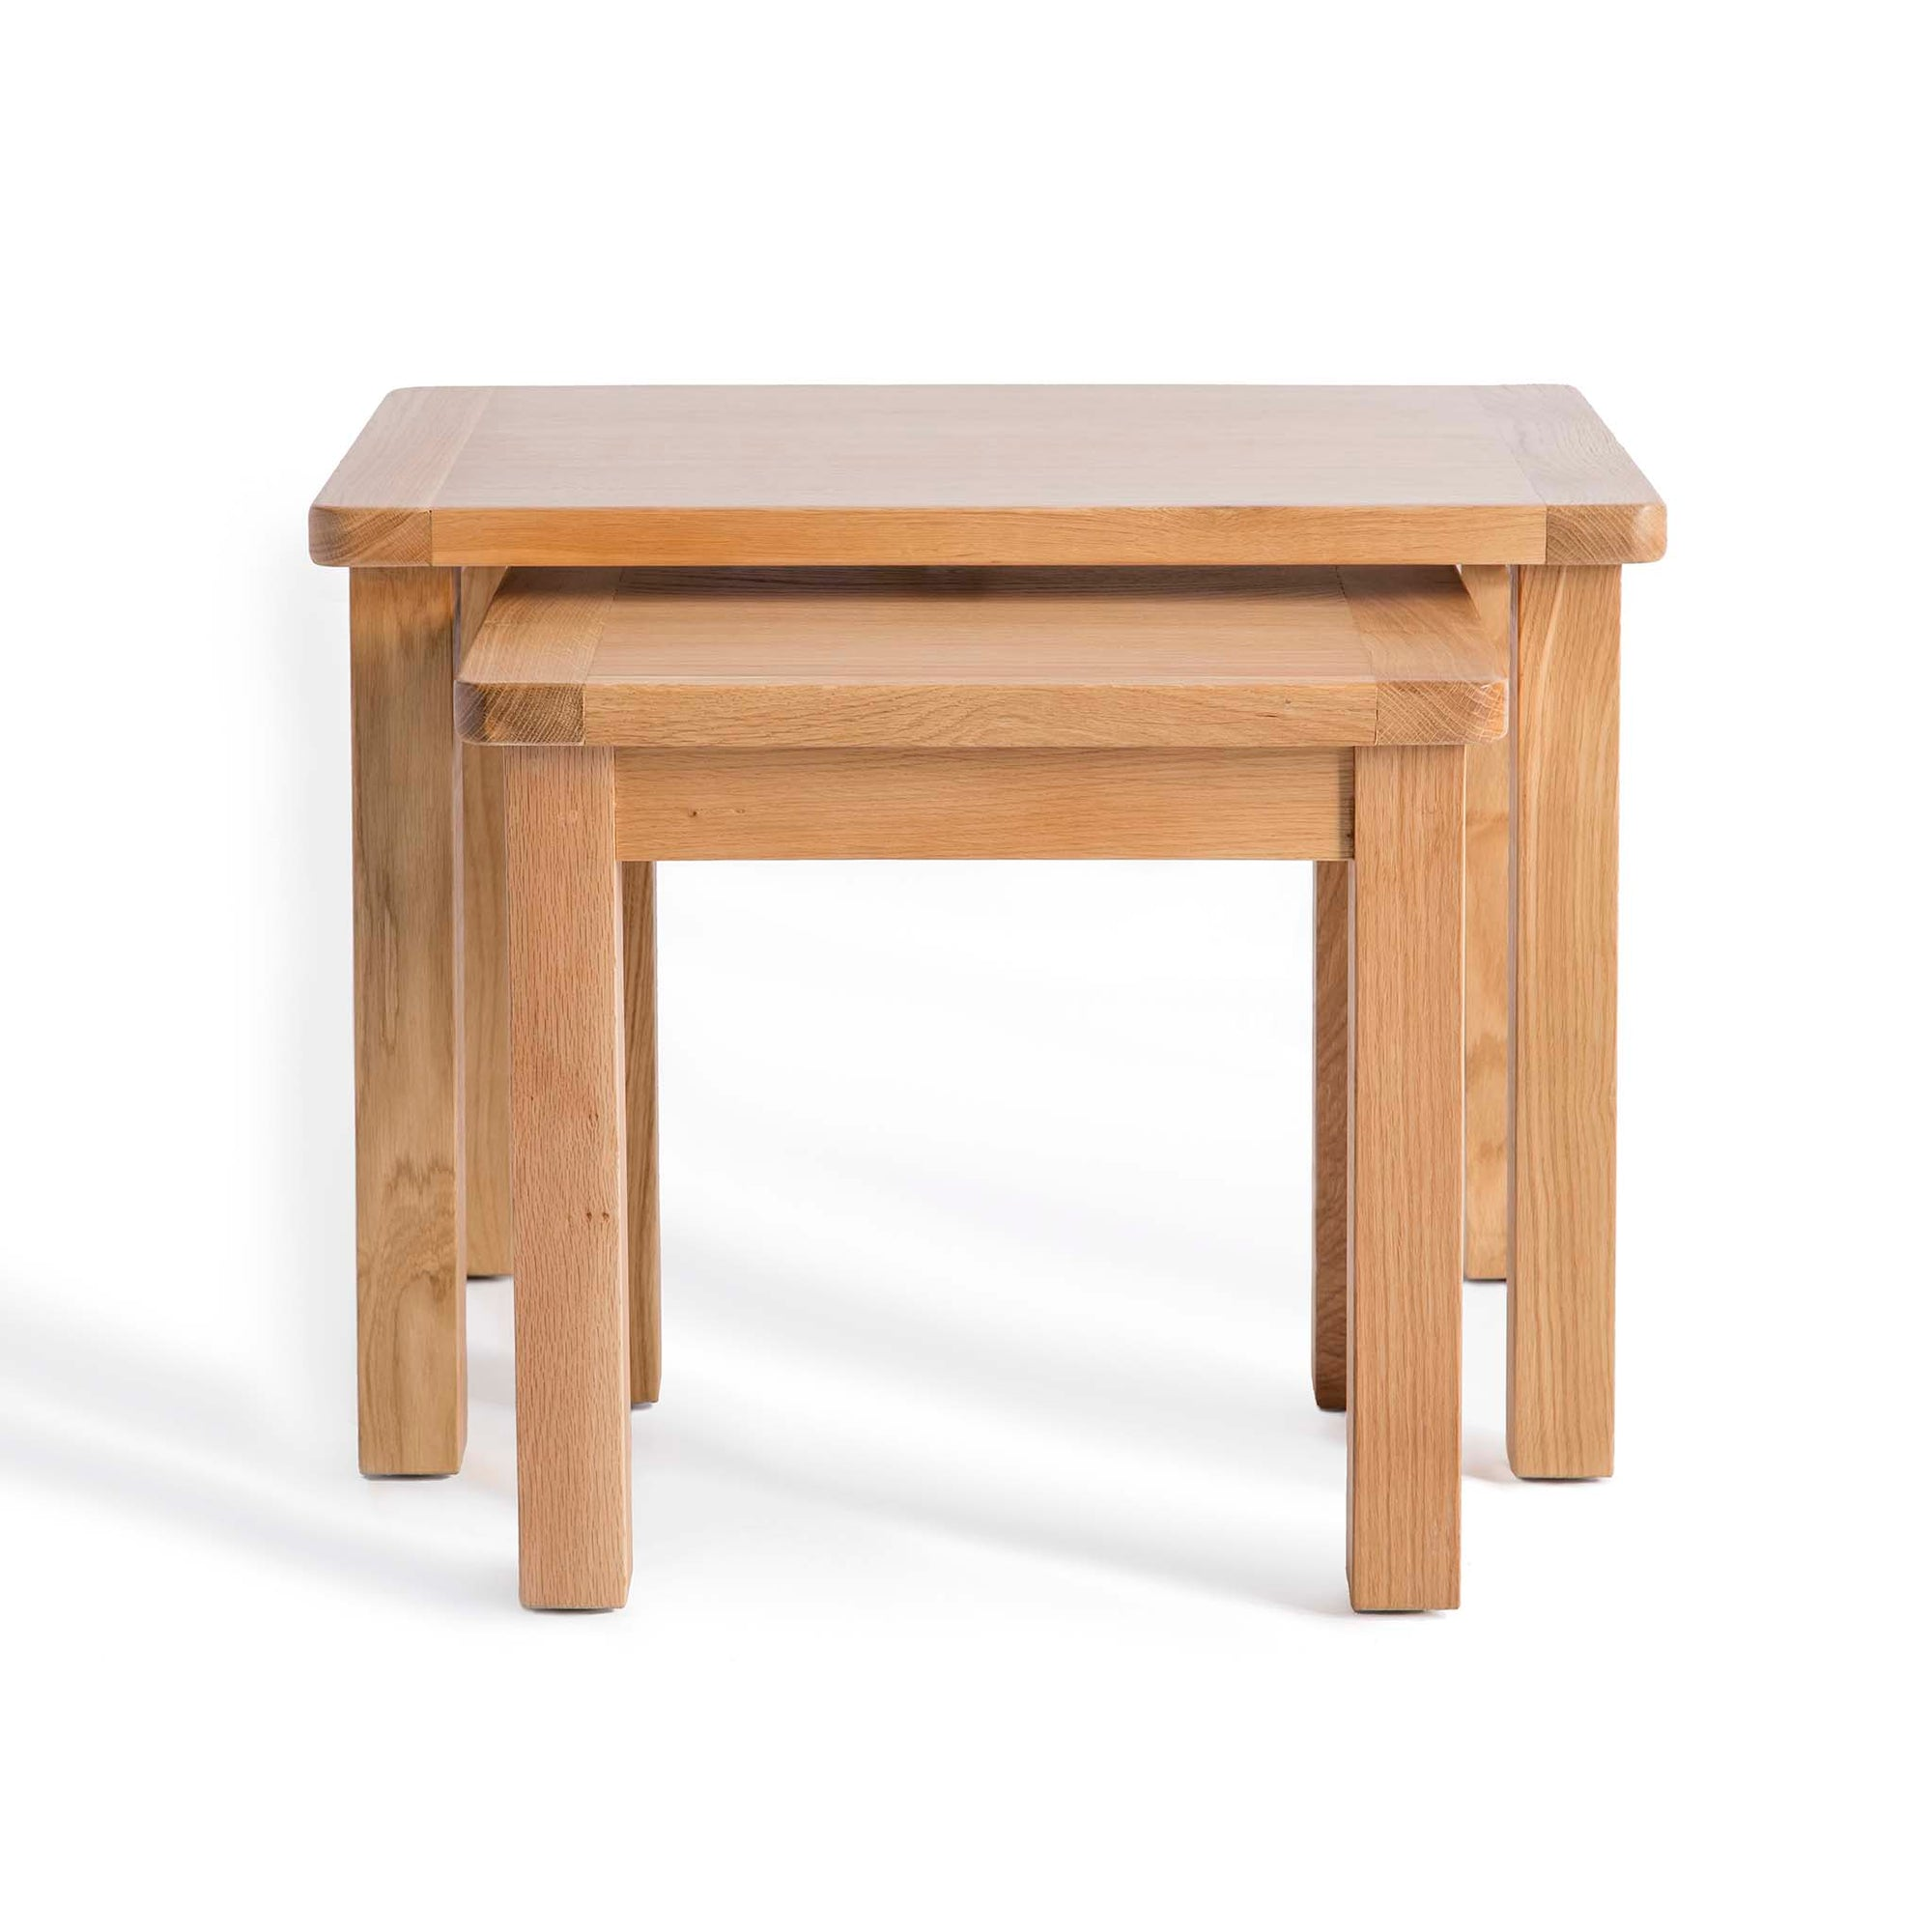 Hampshire Oak Nest of Tables by Roseland Furniture